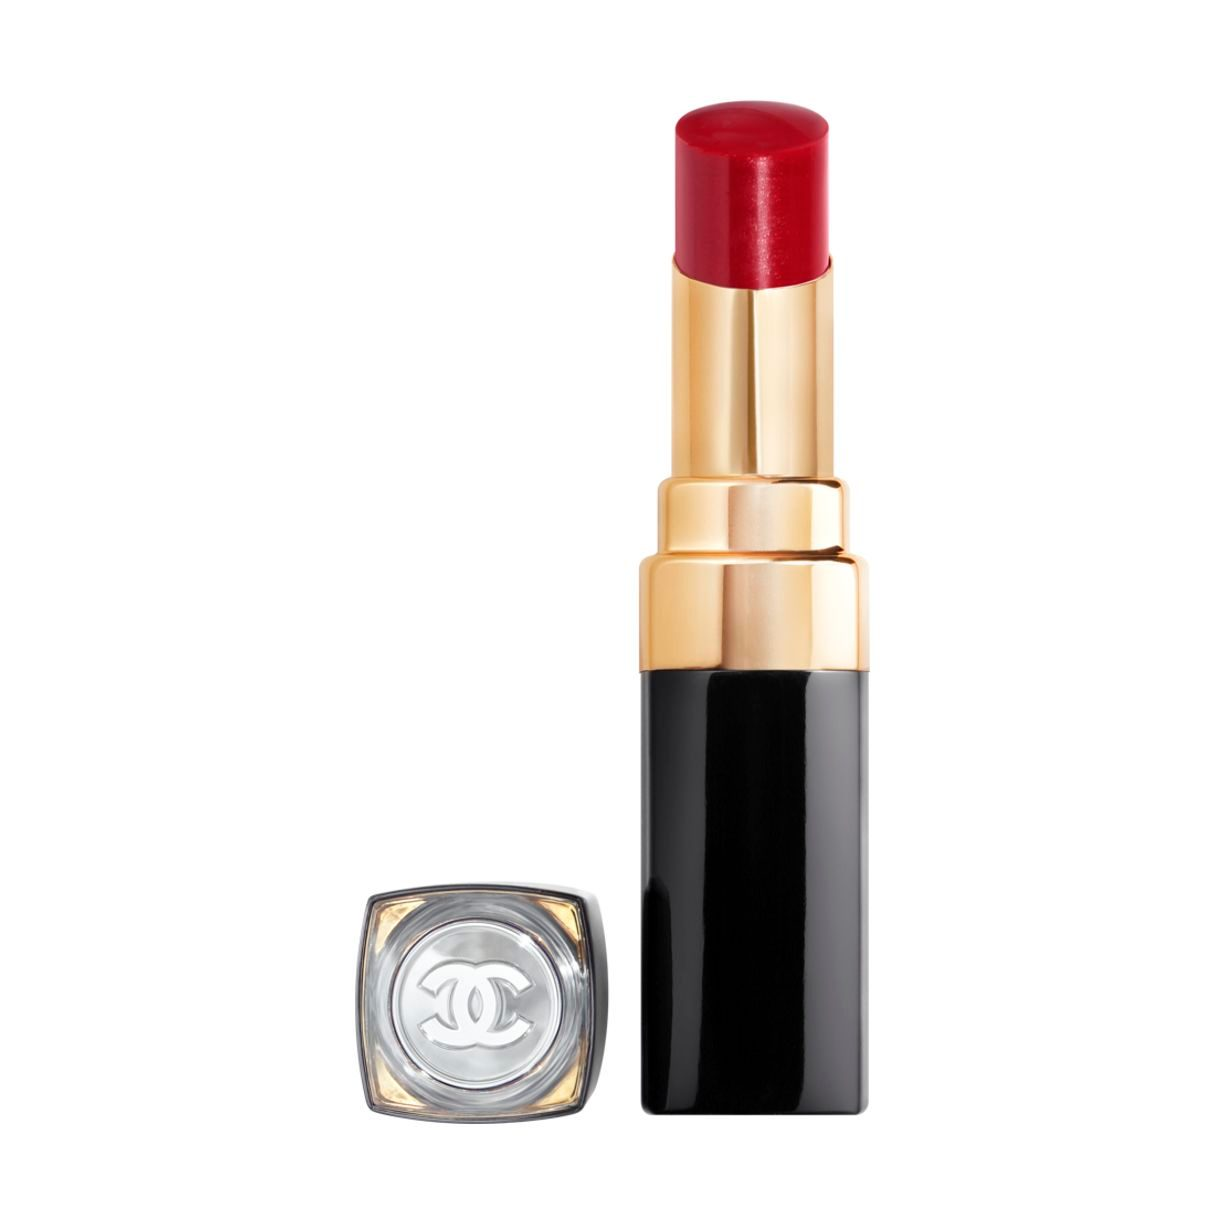 ROUGE COCO FLASH LA COULEUR, LA BRILLANCE, L'INTENSITÉ EN UN ÉCLAIR 92 - AMOUR